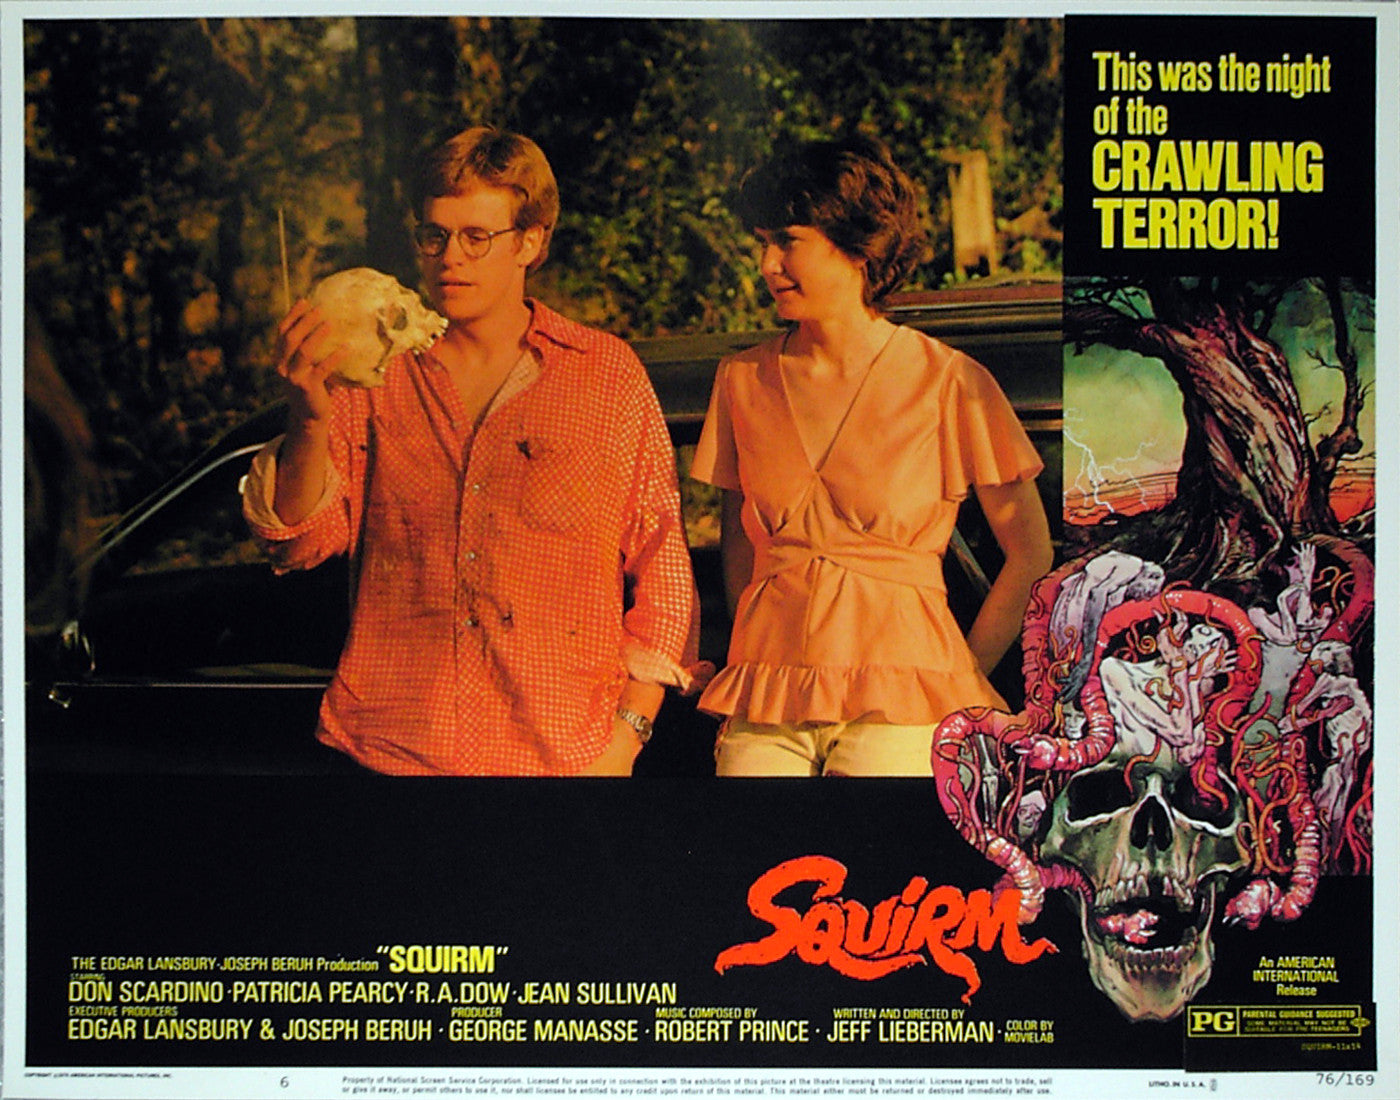 SQUIRM - US lobby card v6